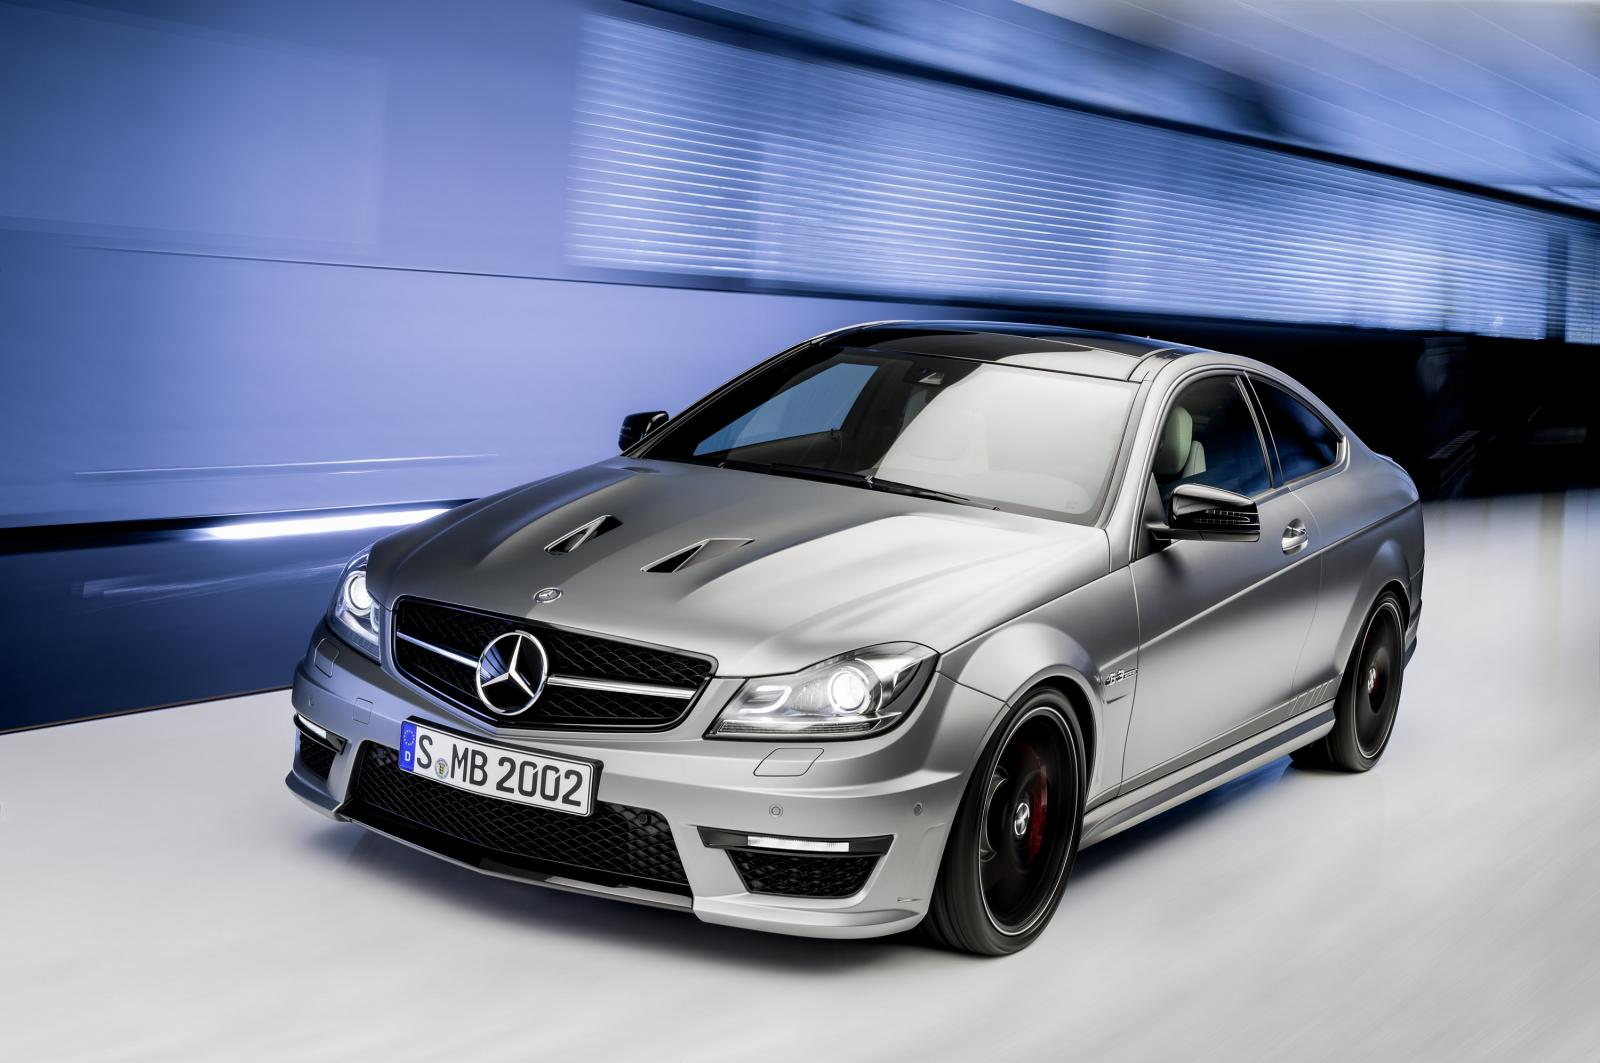 2014 Mercedes-Benz C63 AMG Edition 507 Released [Video] - autoevolution